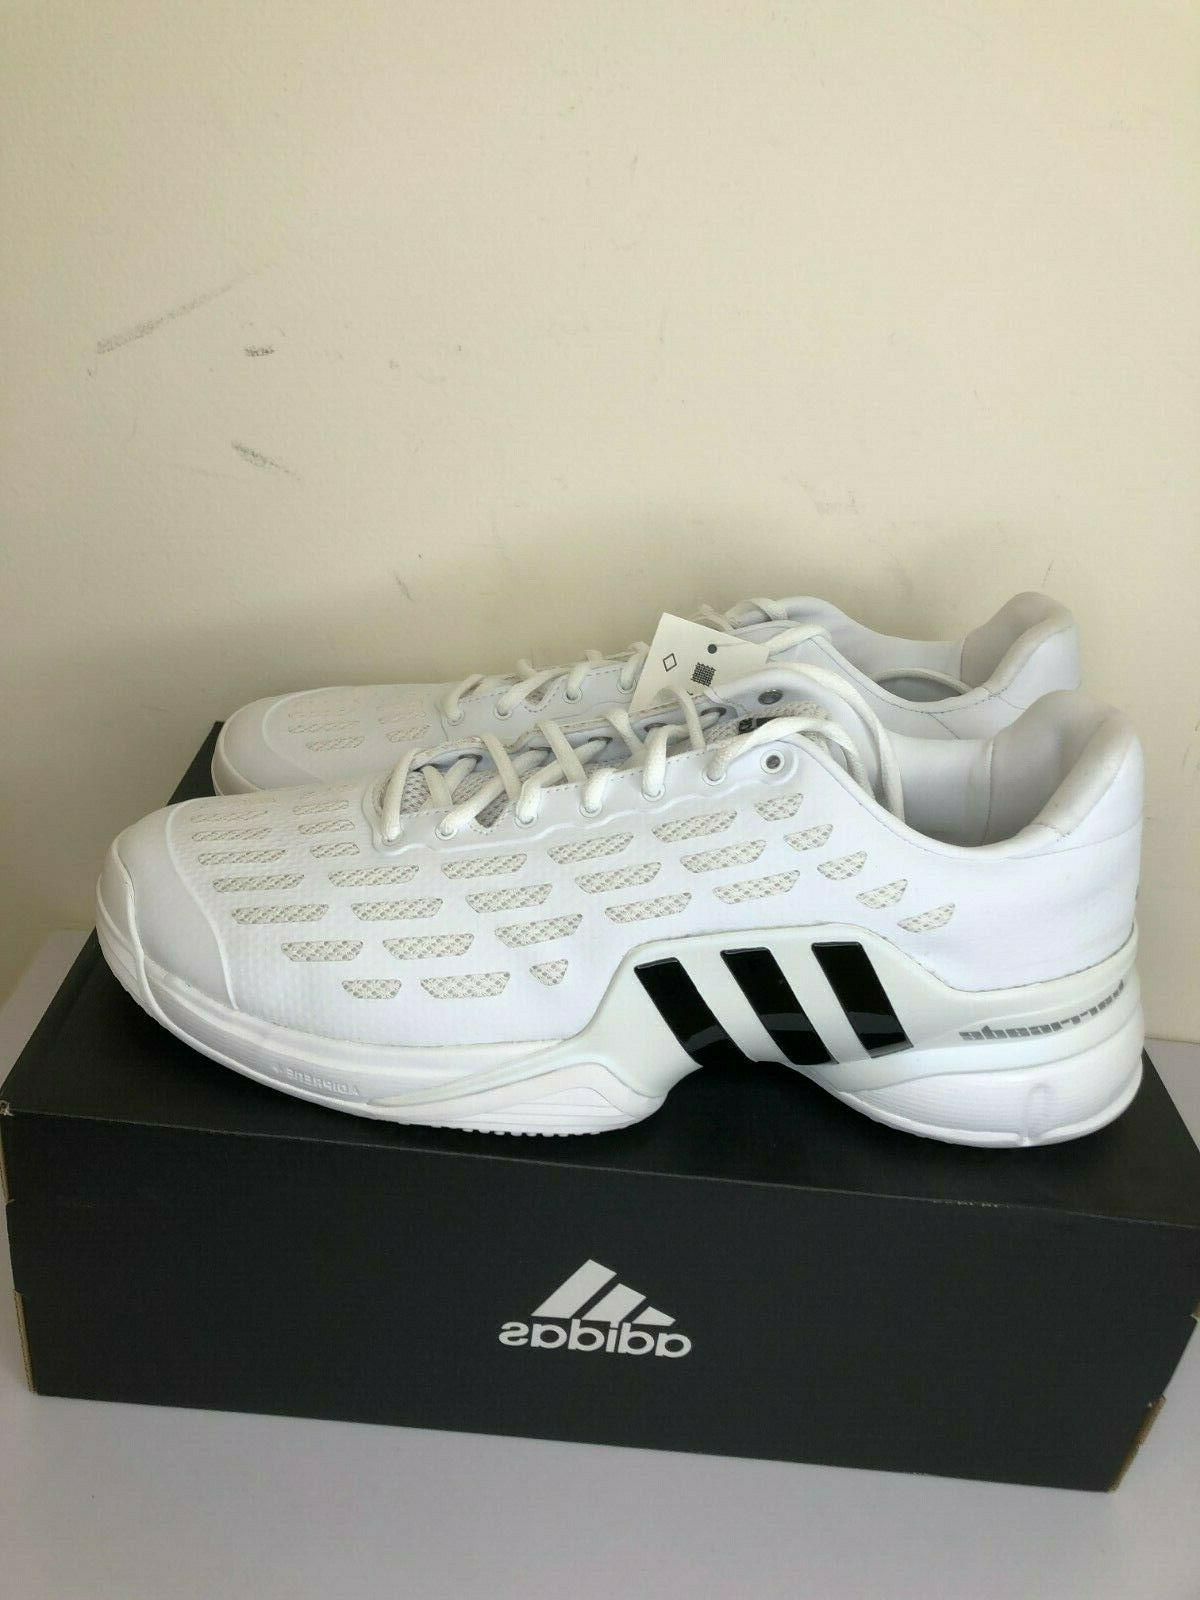 Mens Barricade 2016 Grass Shoes Size 12.5 White